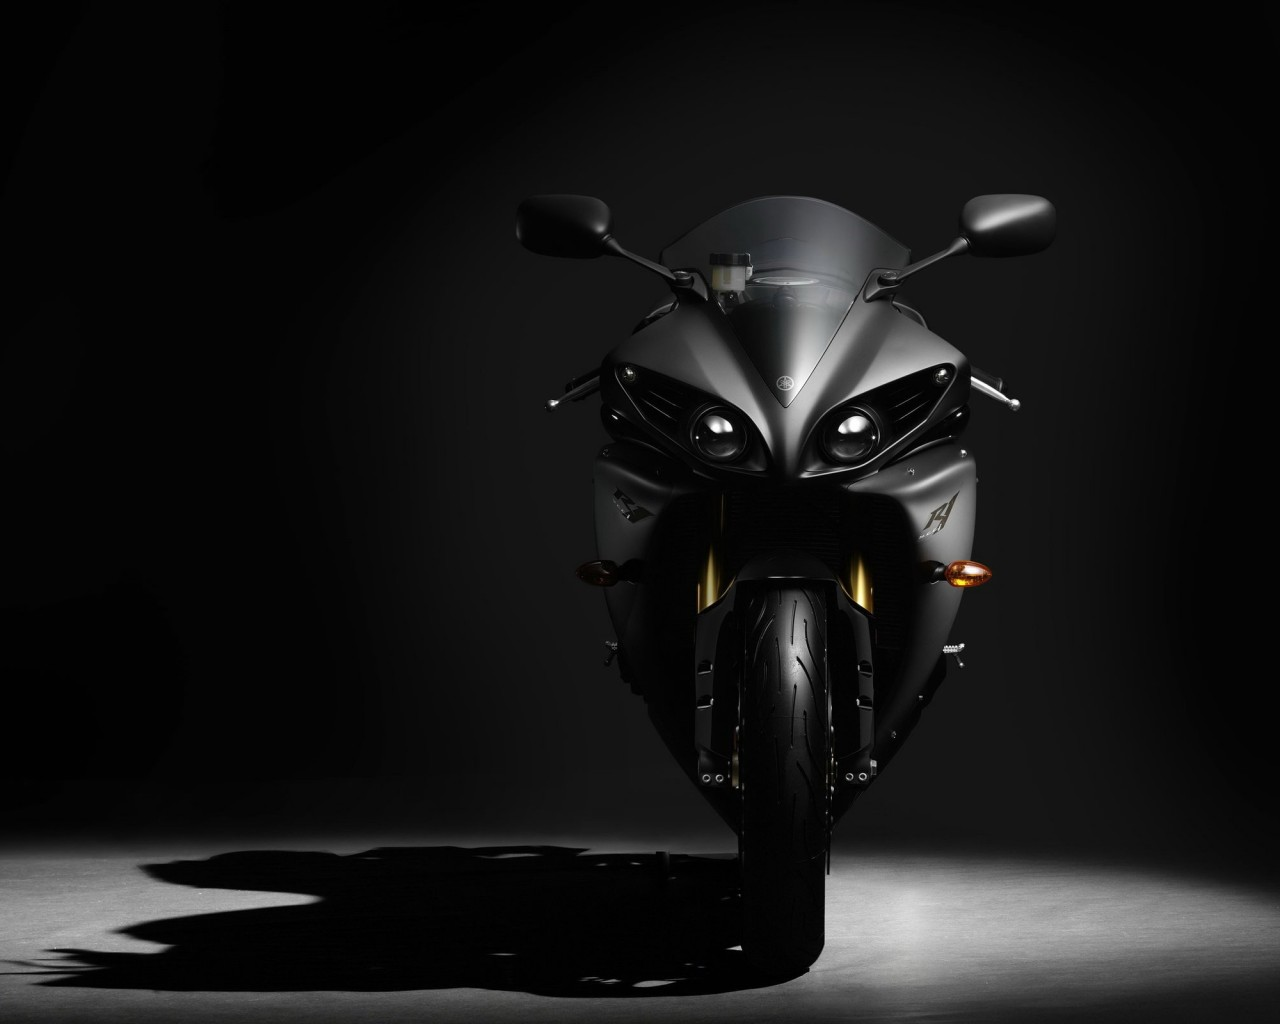 Yamaha Yzf R1 Wallpaper for Desktop 1280x1024